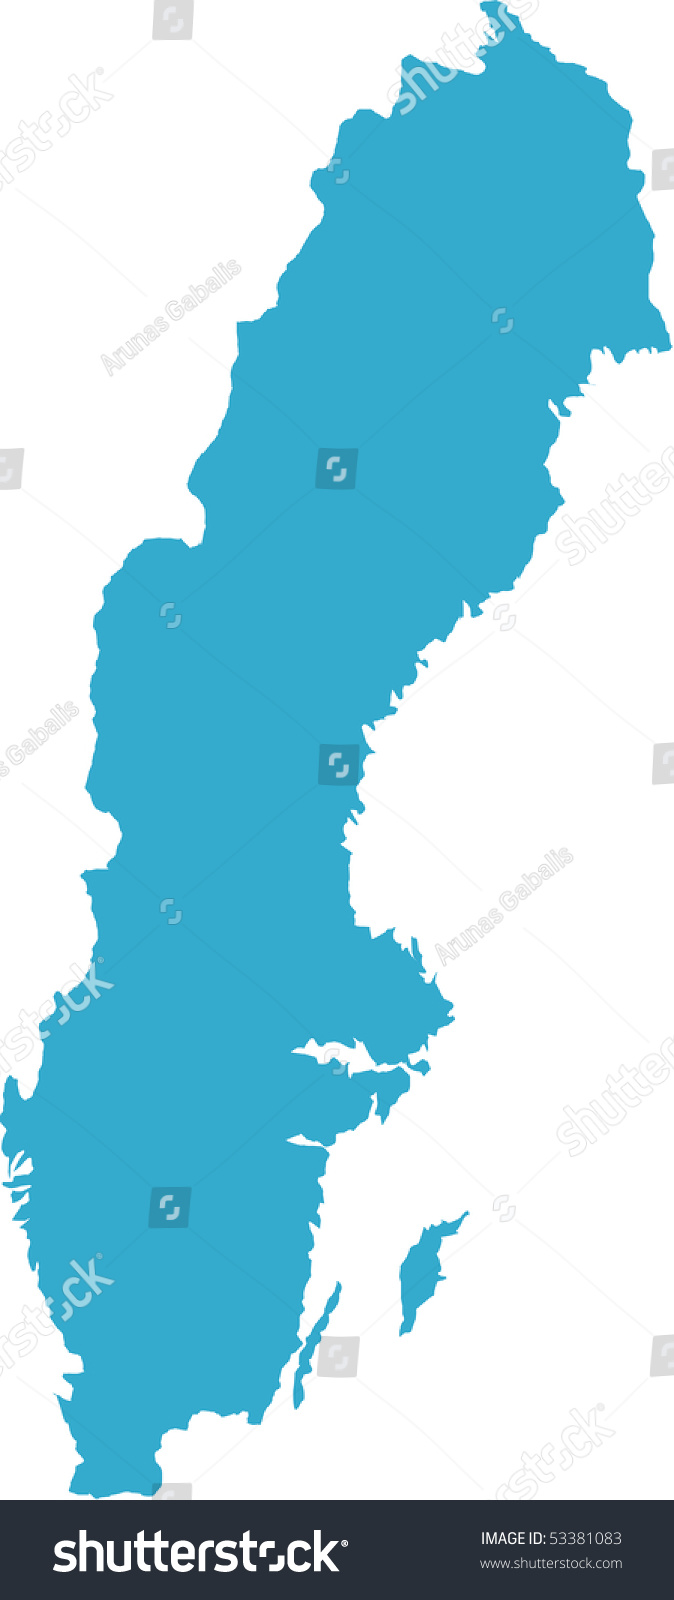 There Map Sweden Country Stock Vector Shutterstock - Sweden map of country